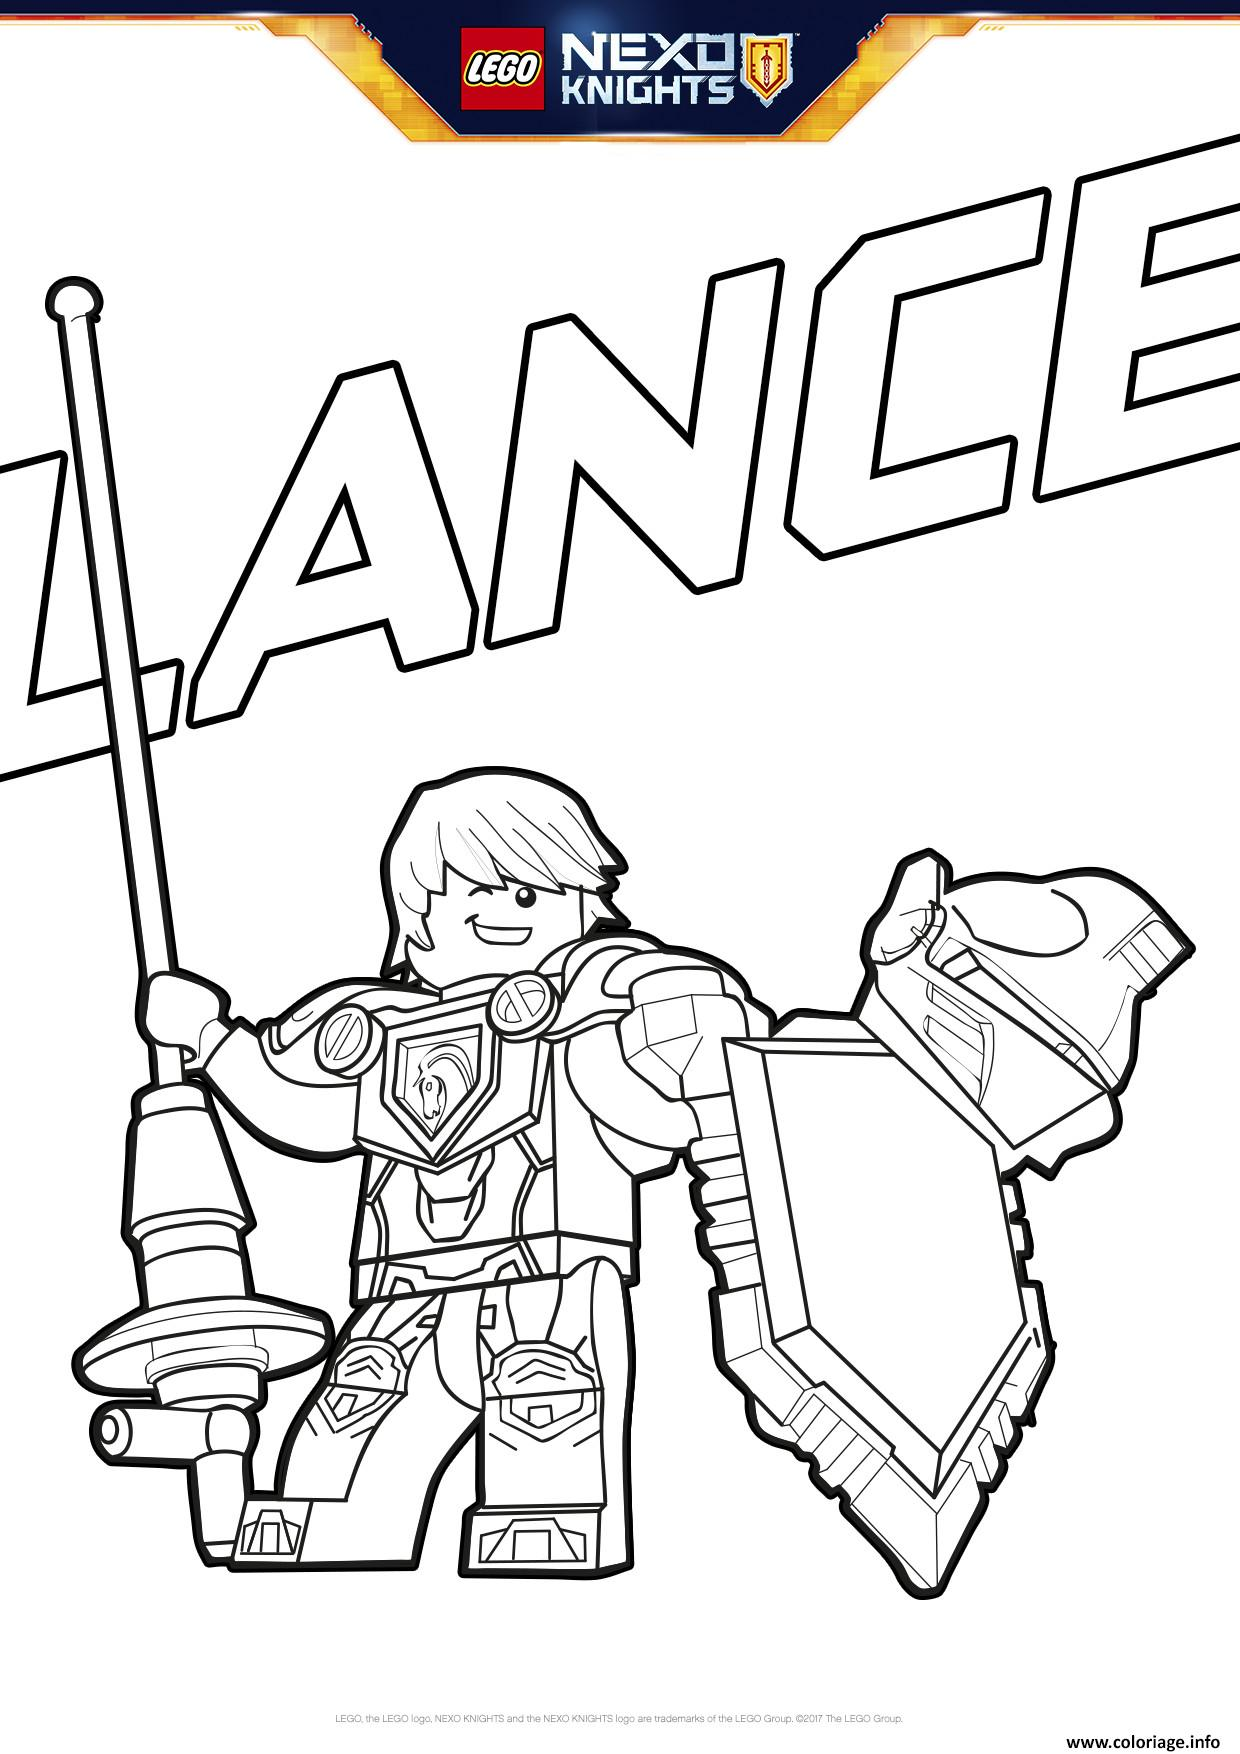 coloriage lego nexo knights bouclier lance  jecolorie